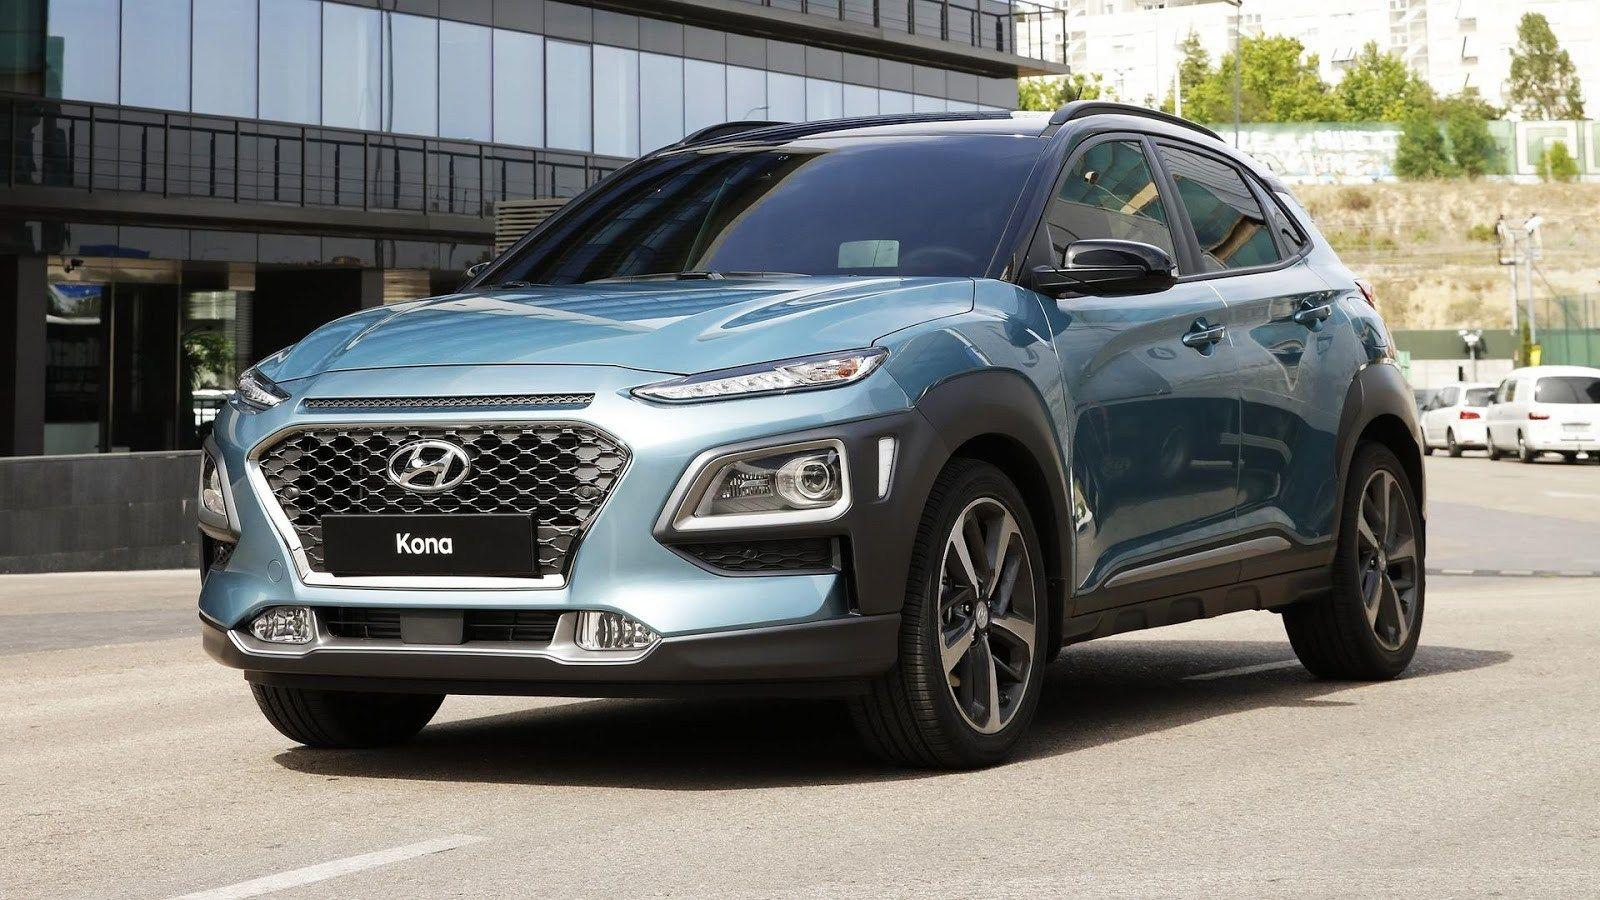 Hyundai Kona: this is it [w/ poll]